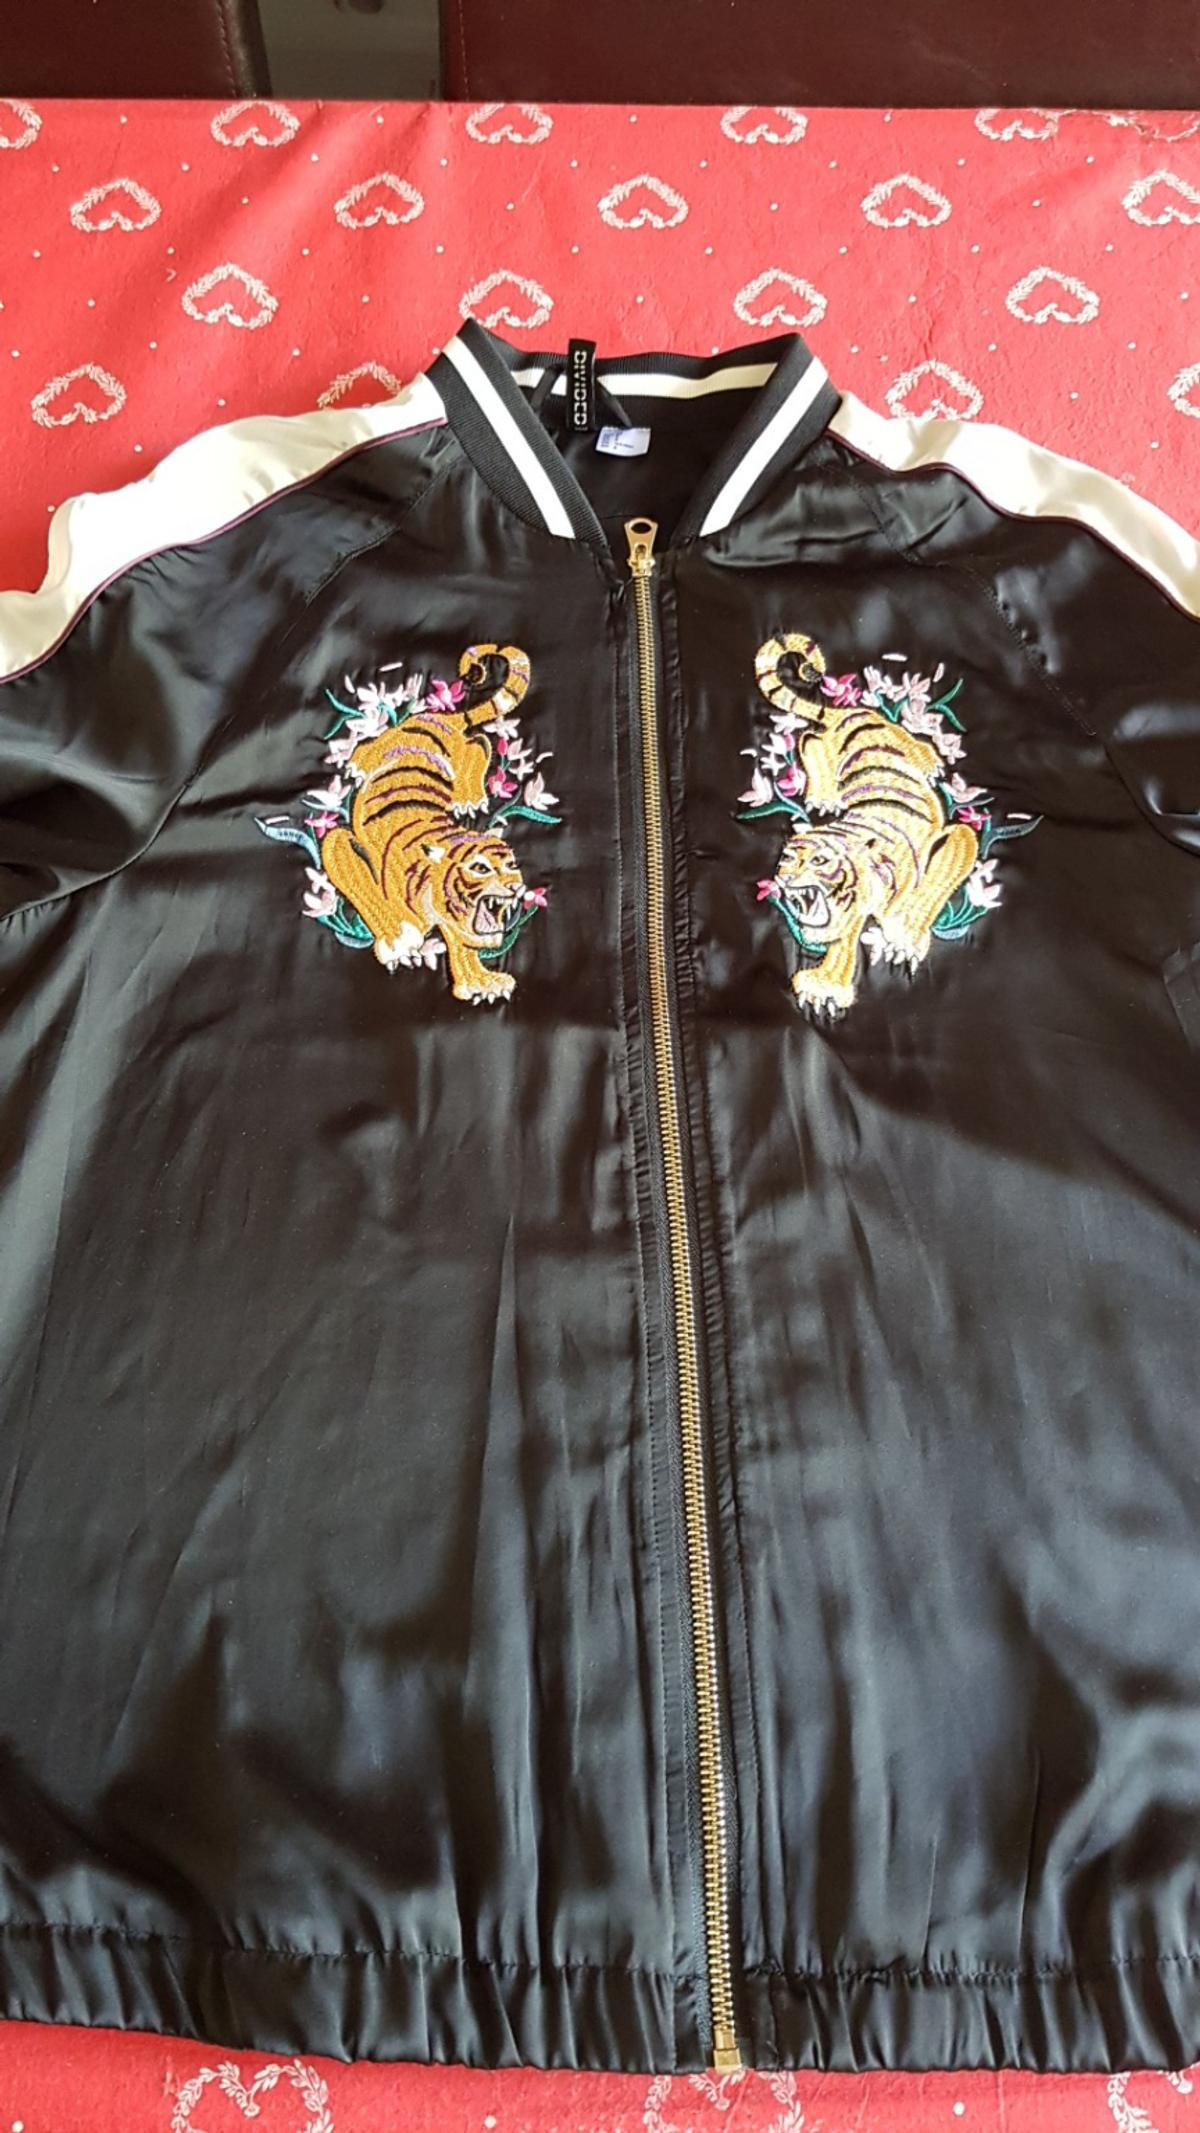 black with design brand new jacket size 12